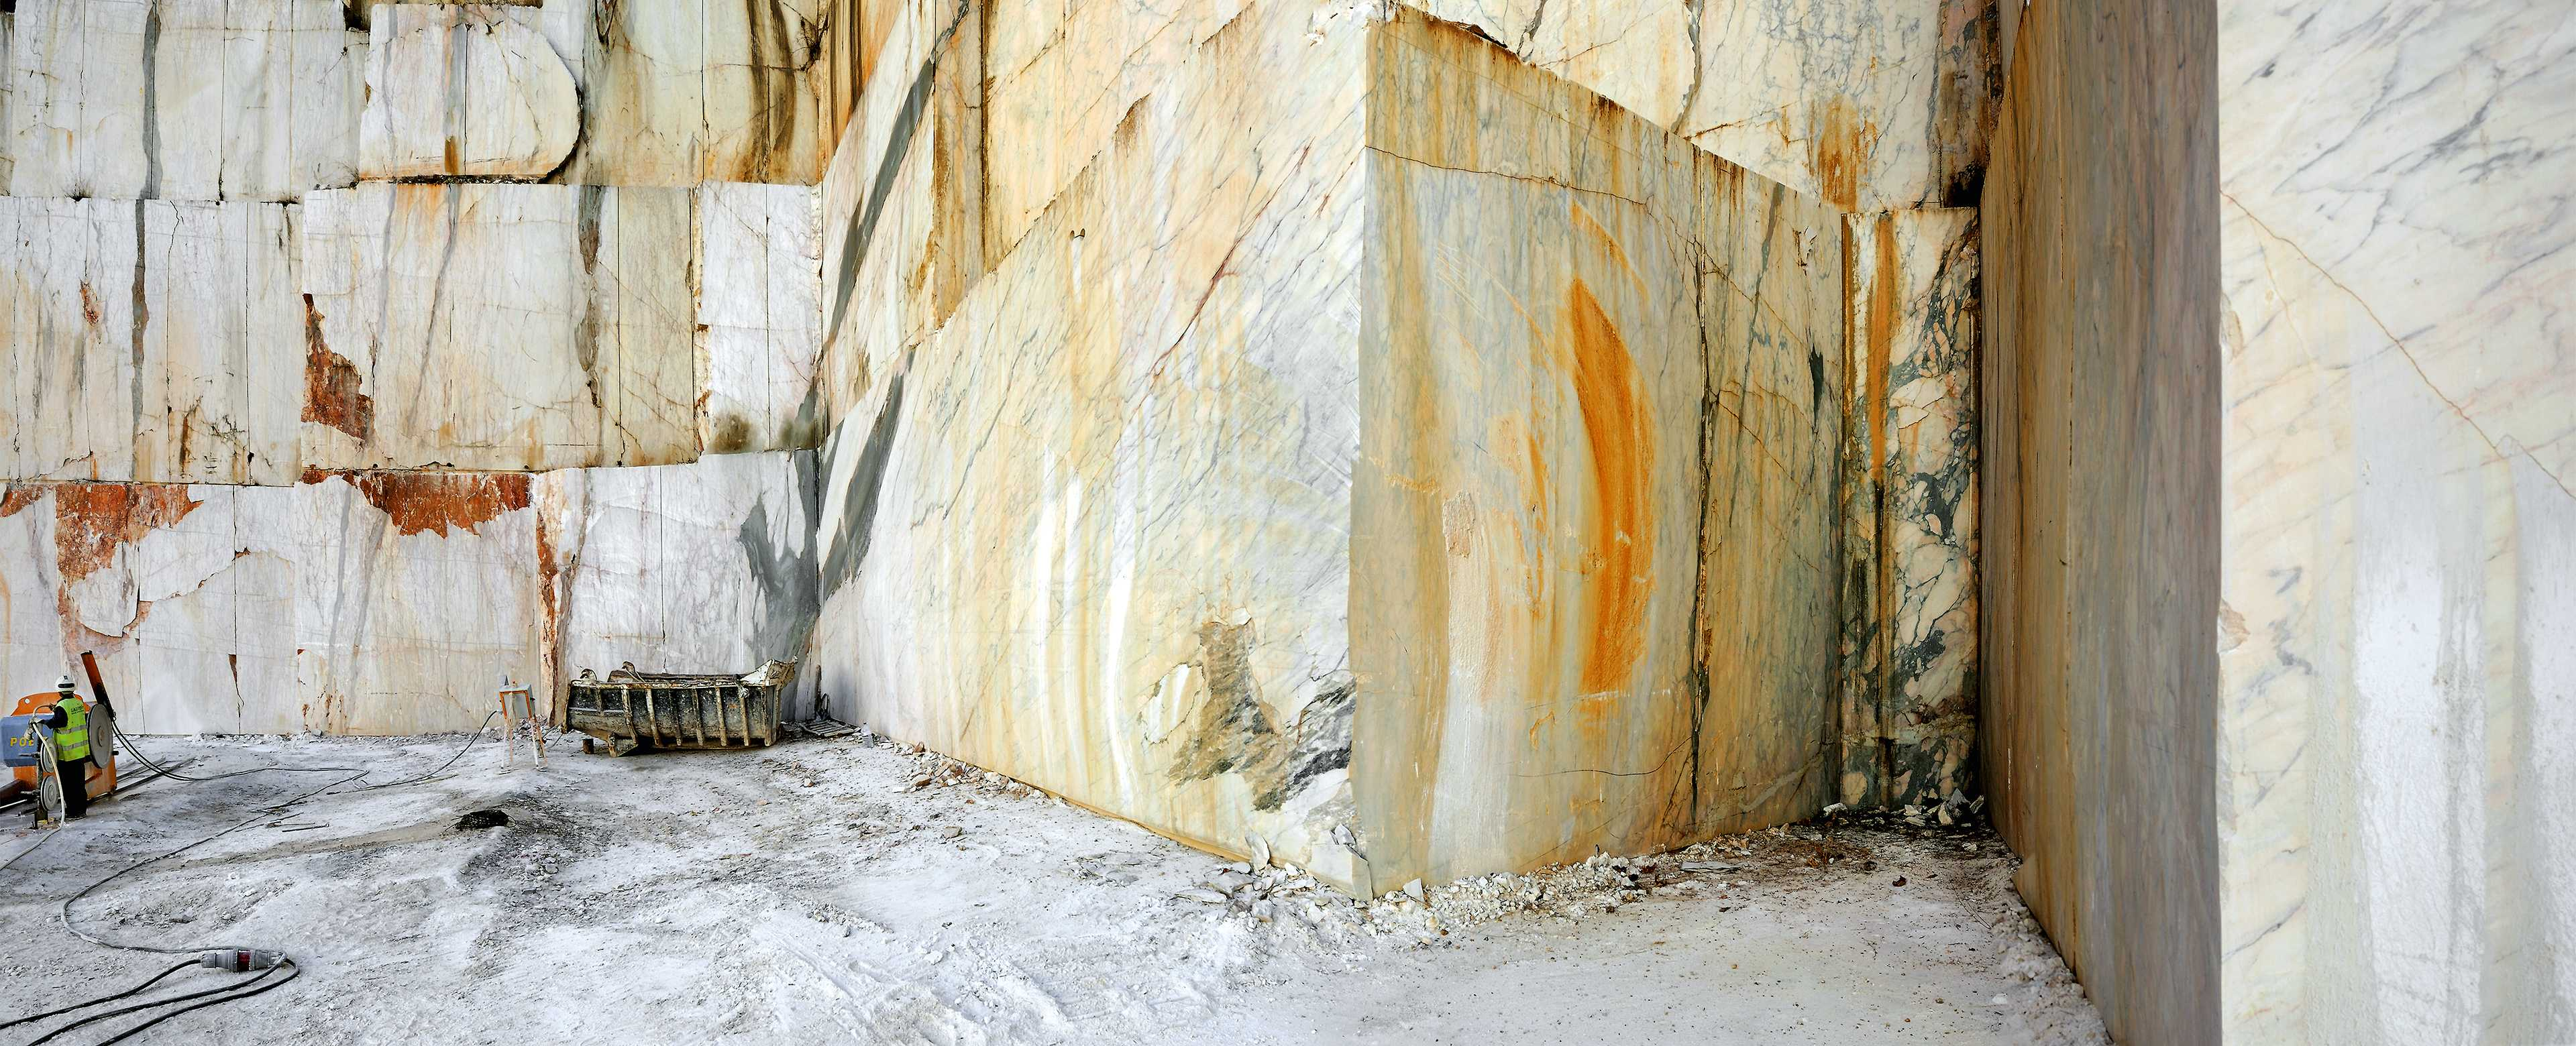 Pedreiras, Portrait of a Quarry  - 6 13 38